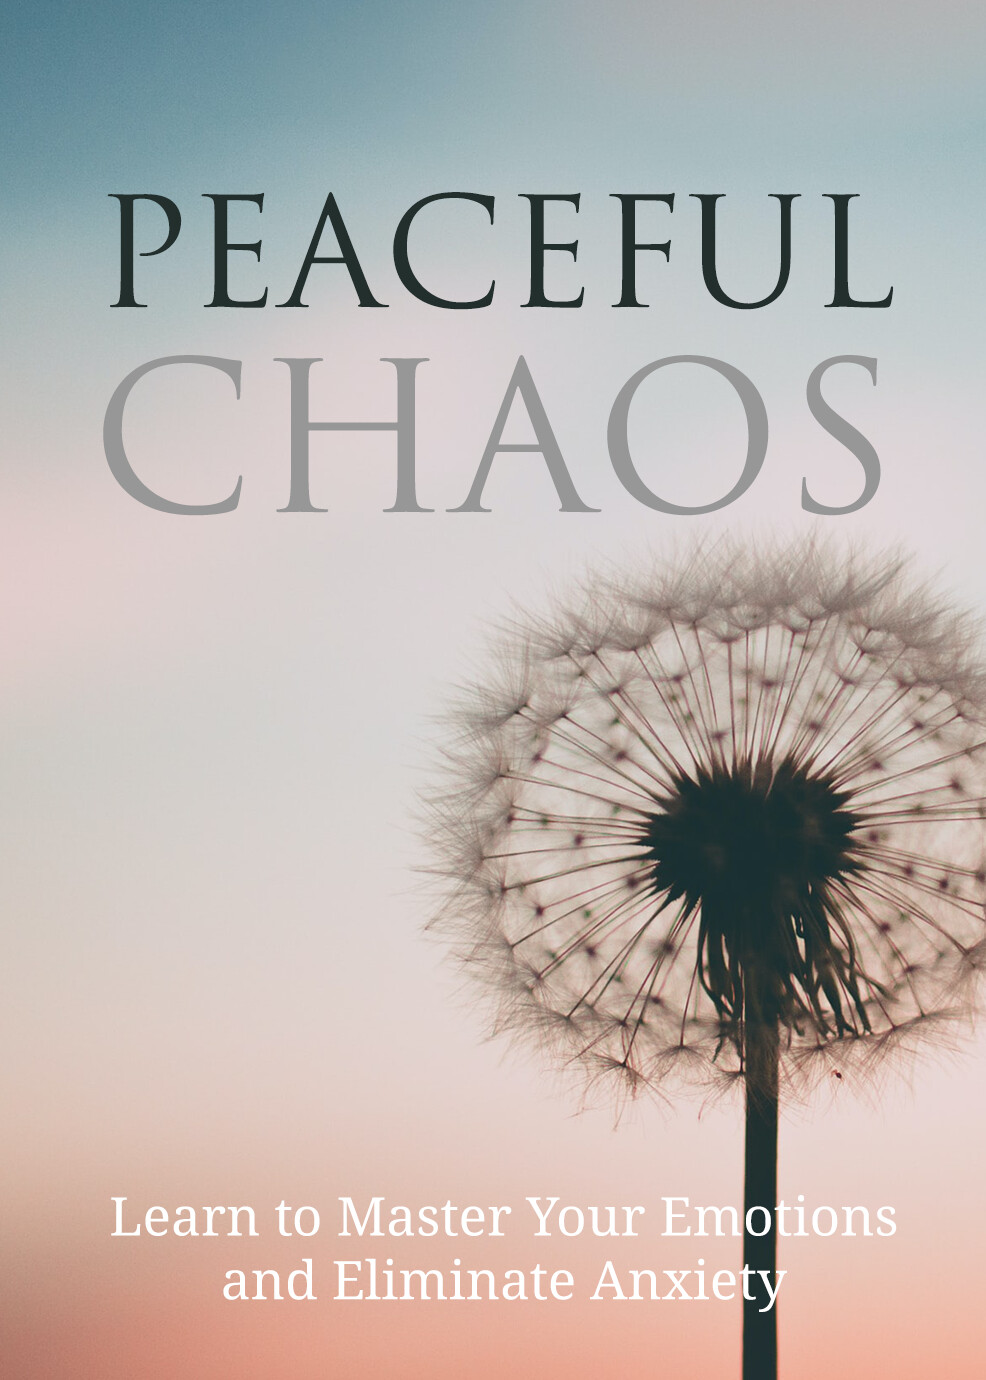 Peaceful Chaos, Learn to Master Your Emotions and Eliminate Anxiety